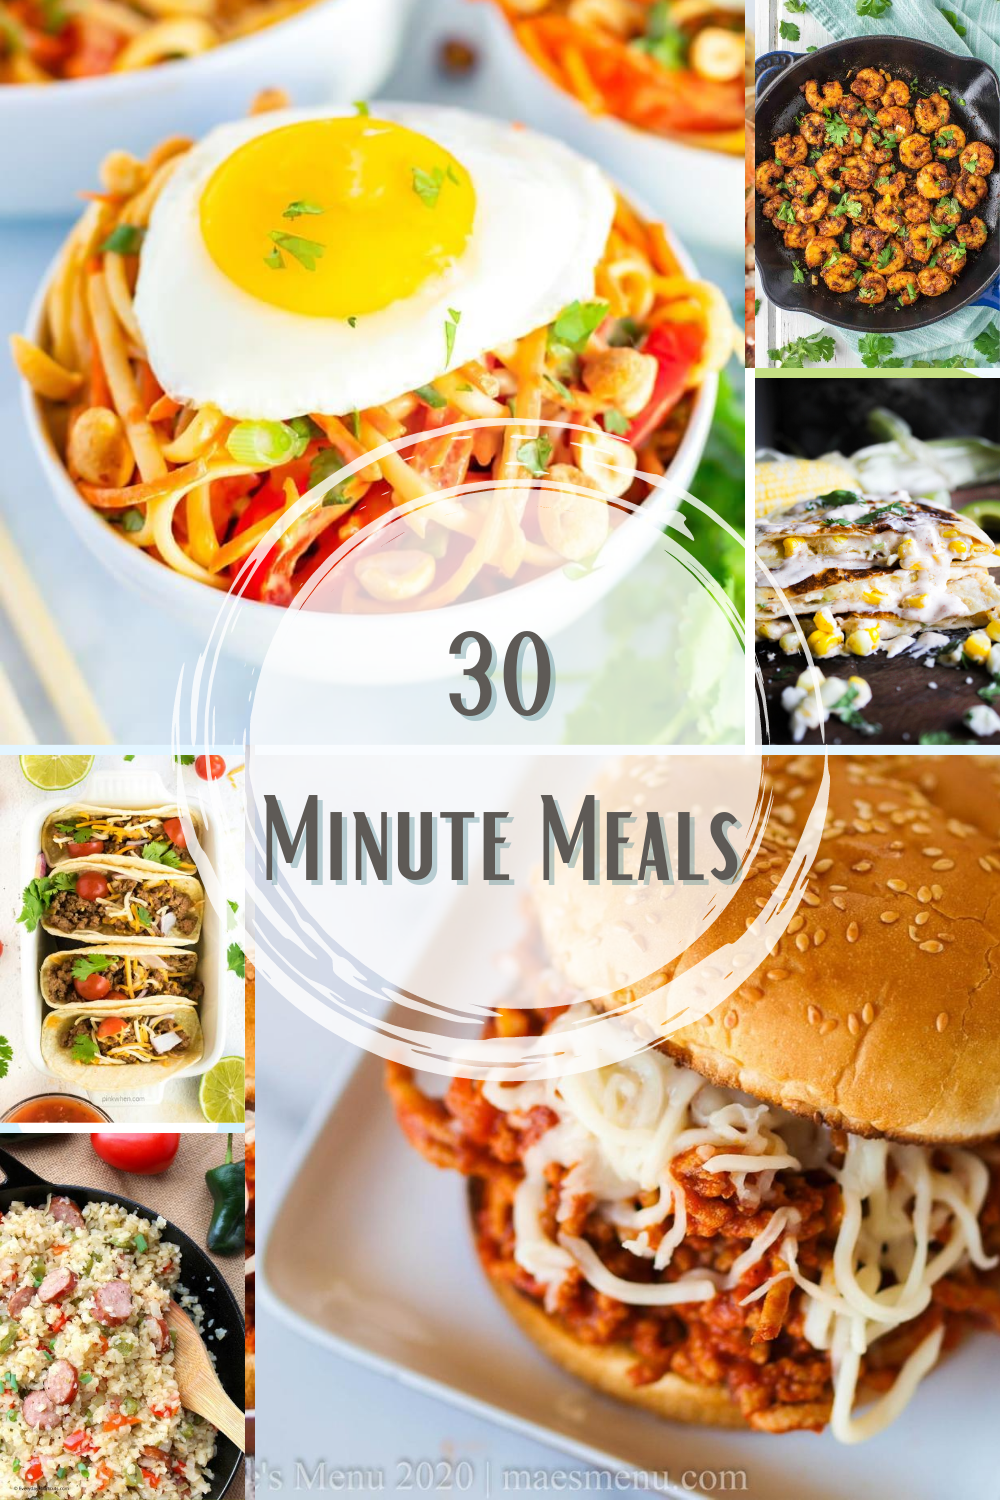 With the kids headed back to school, make life easier with any of these 50 quick and easy Thirty Minute Meals to get everyone fed in a flash!